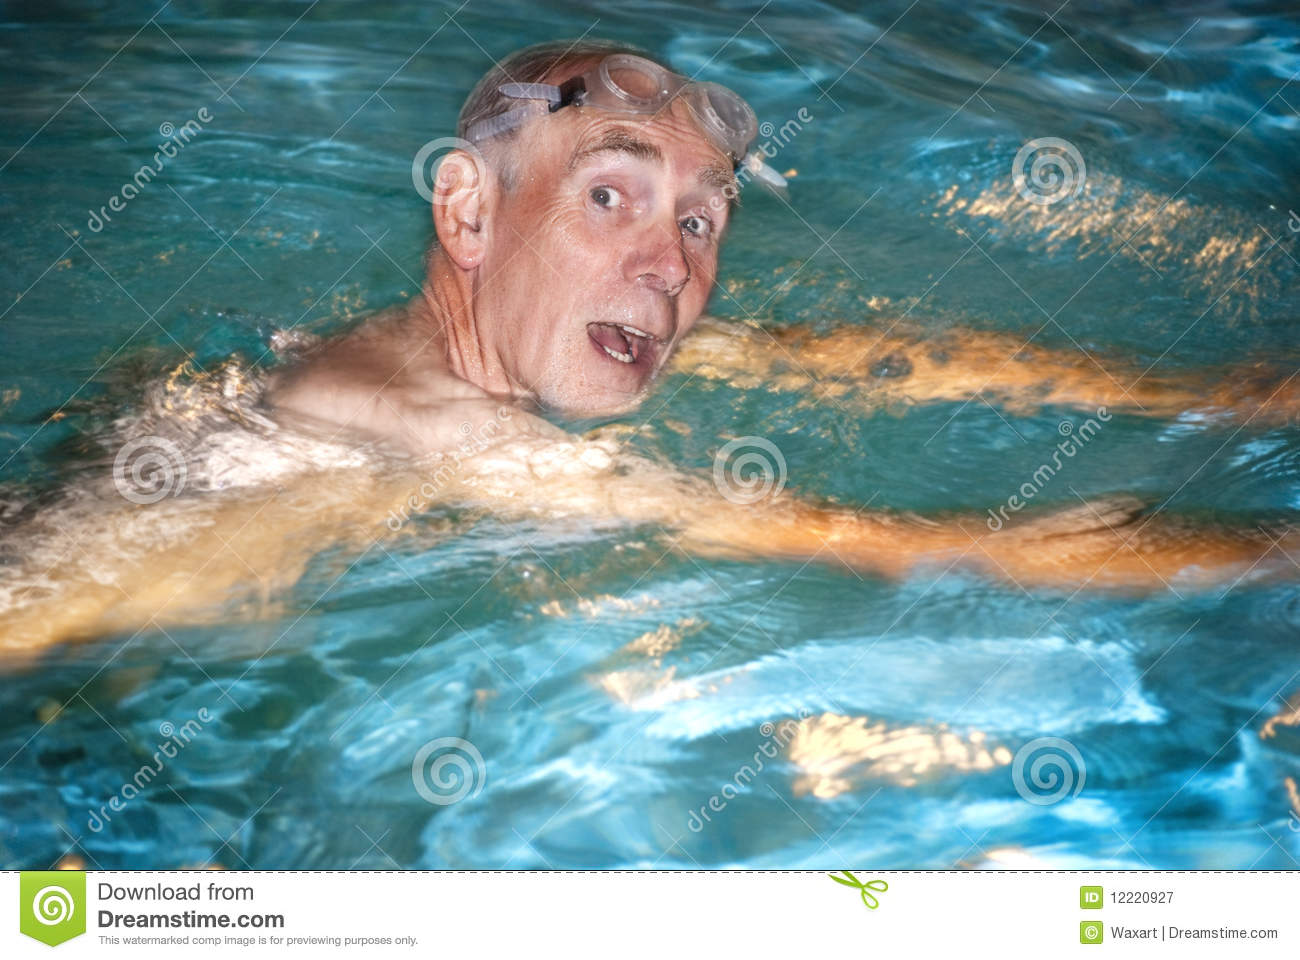 Old man swimming in pool stock image image of pool blue for What to do with old swimming pool